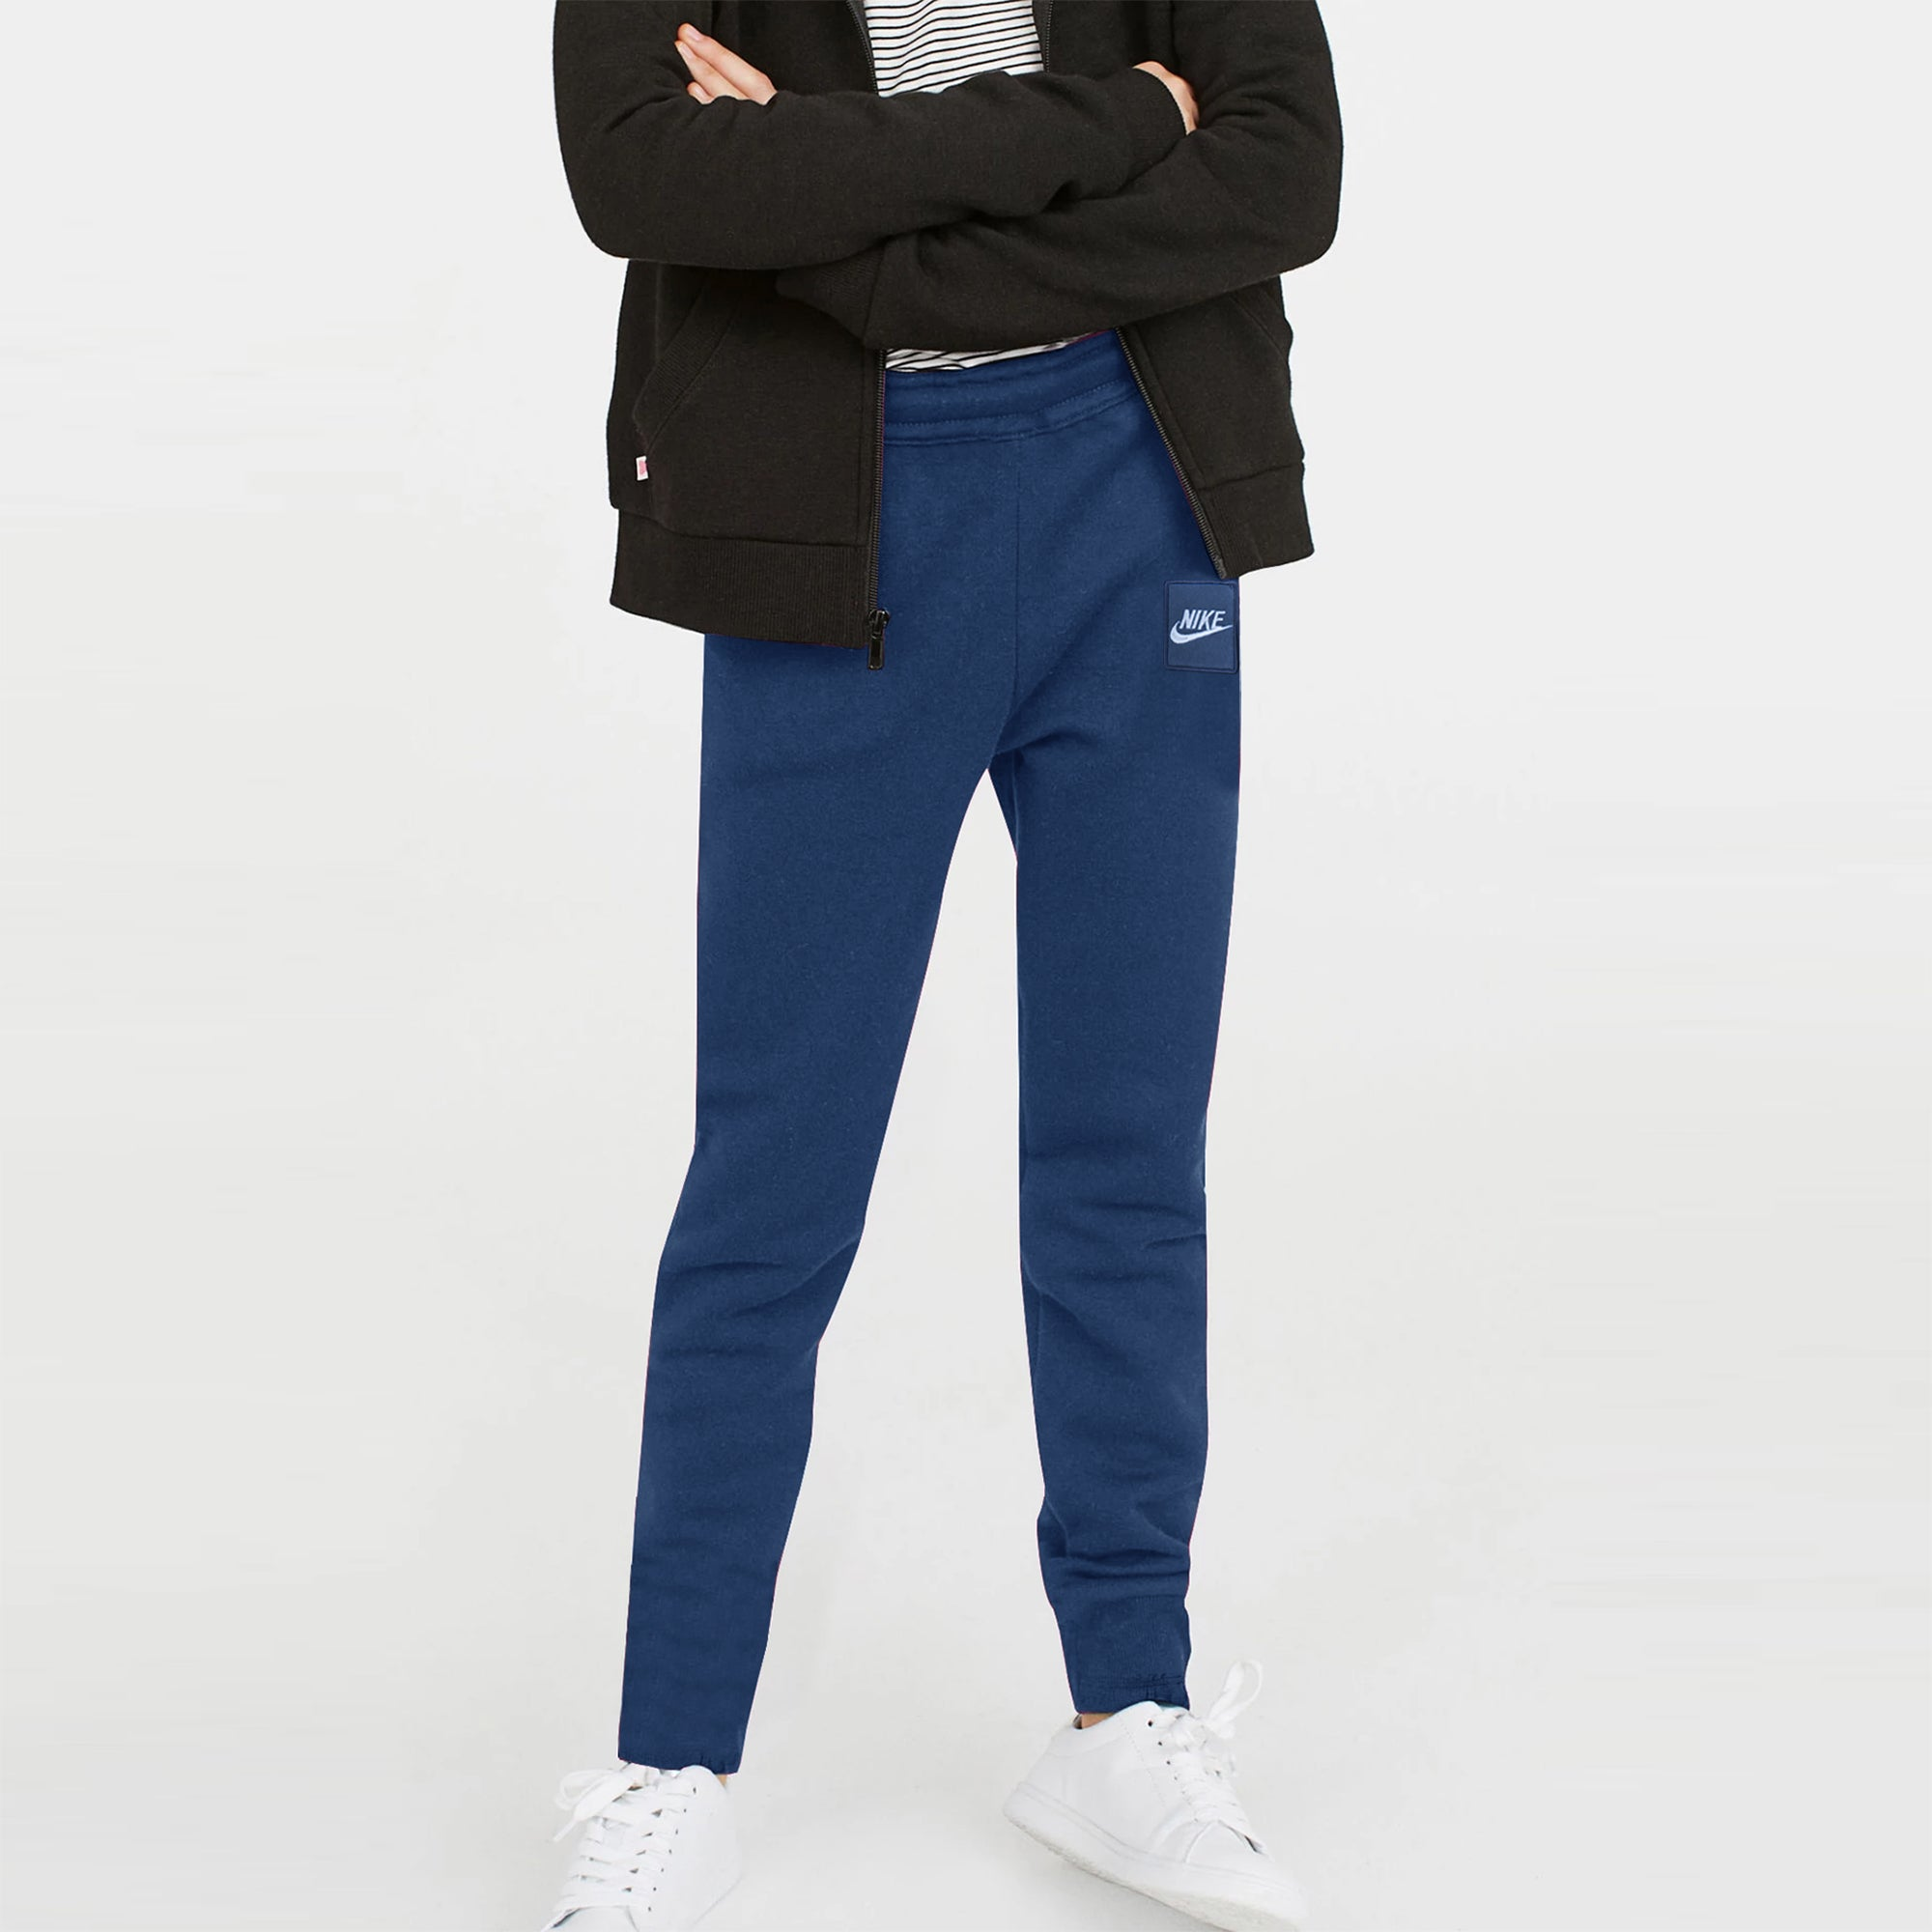 NK Terry Fleece Jogger Trouser For Boys-Dark Blue-SP1073